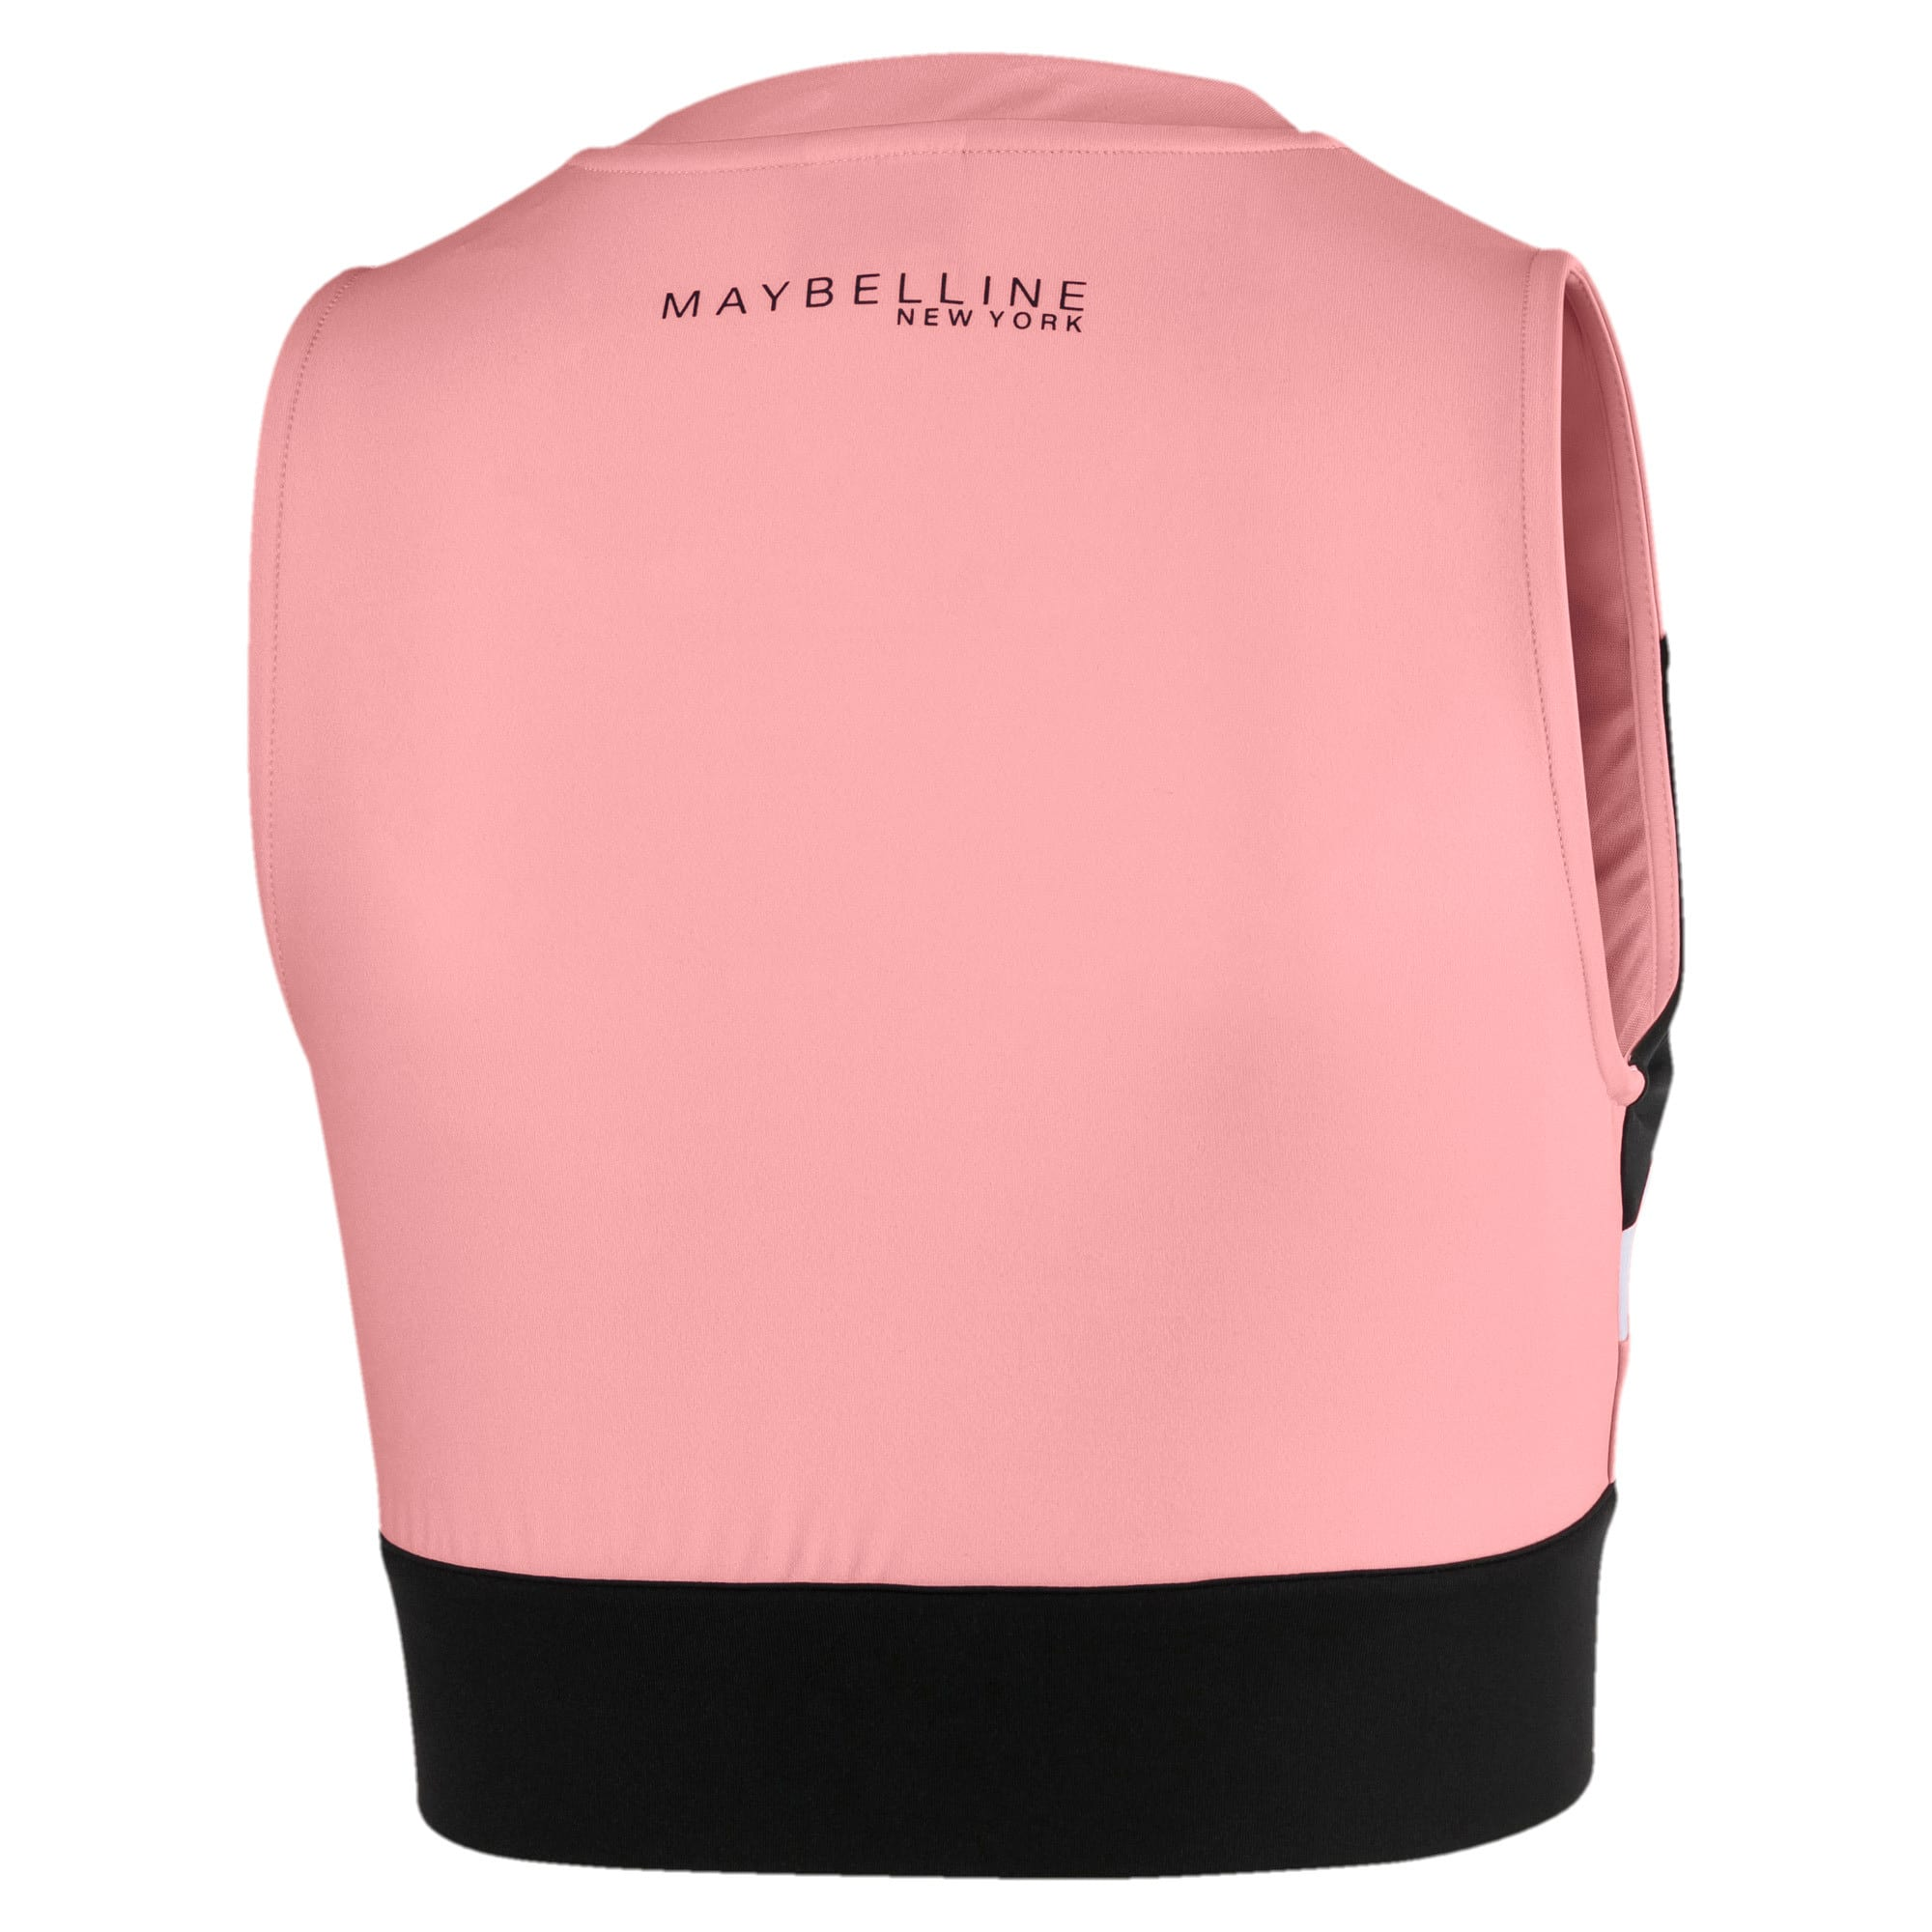 Anteprima 2 di PUMA x MAYBELLINE Women's Crop Top, Powder Pink, medio